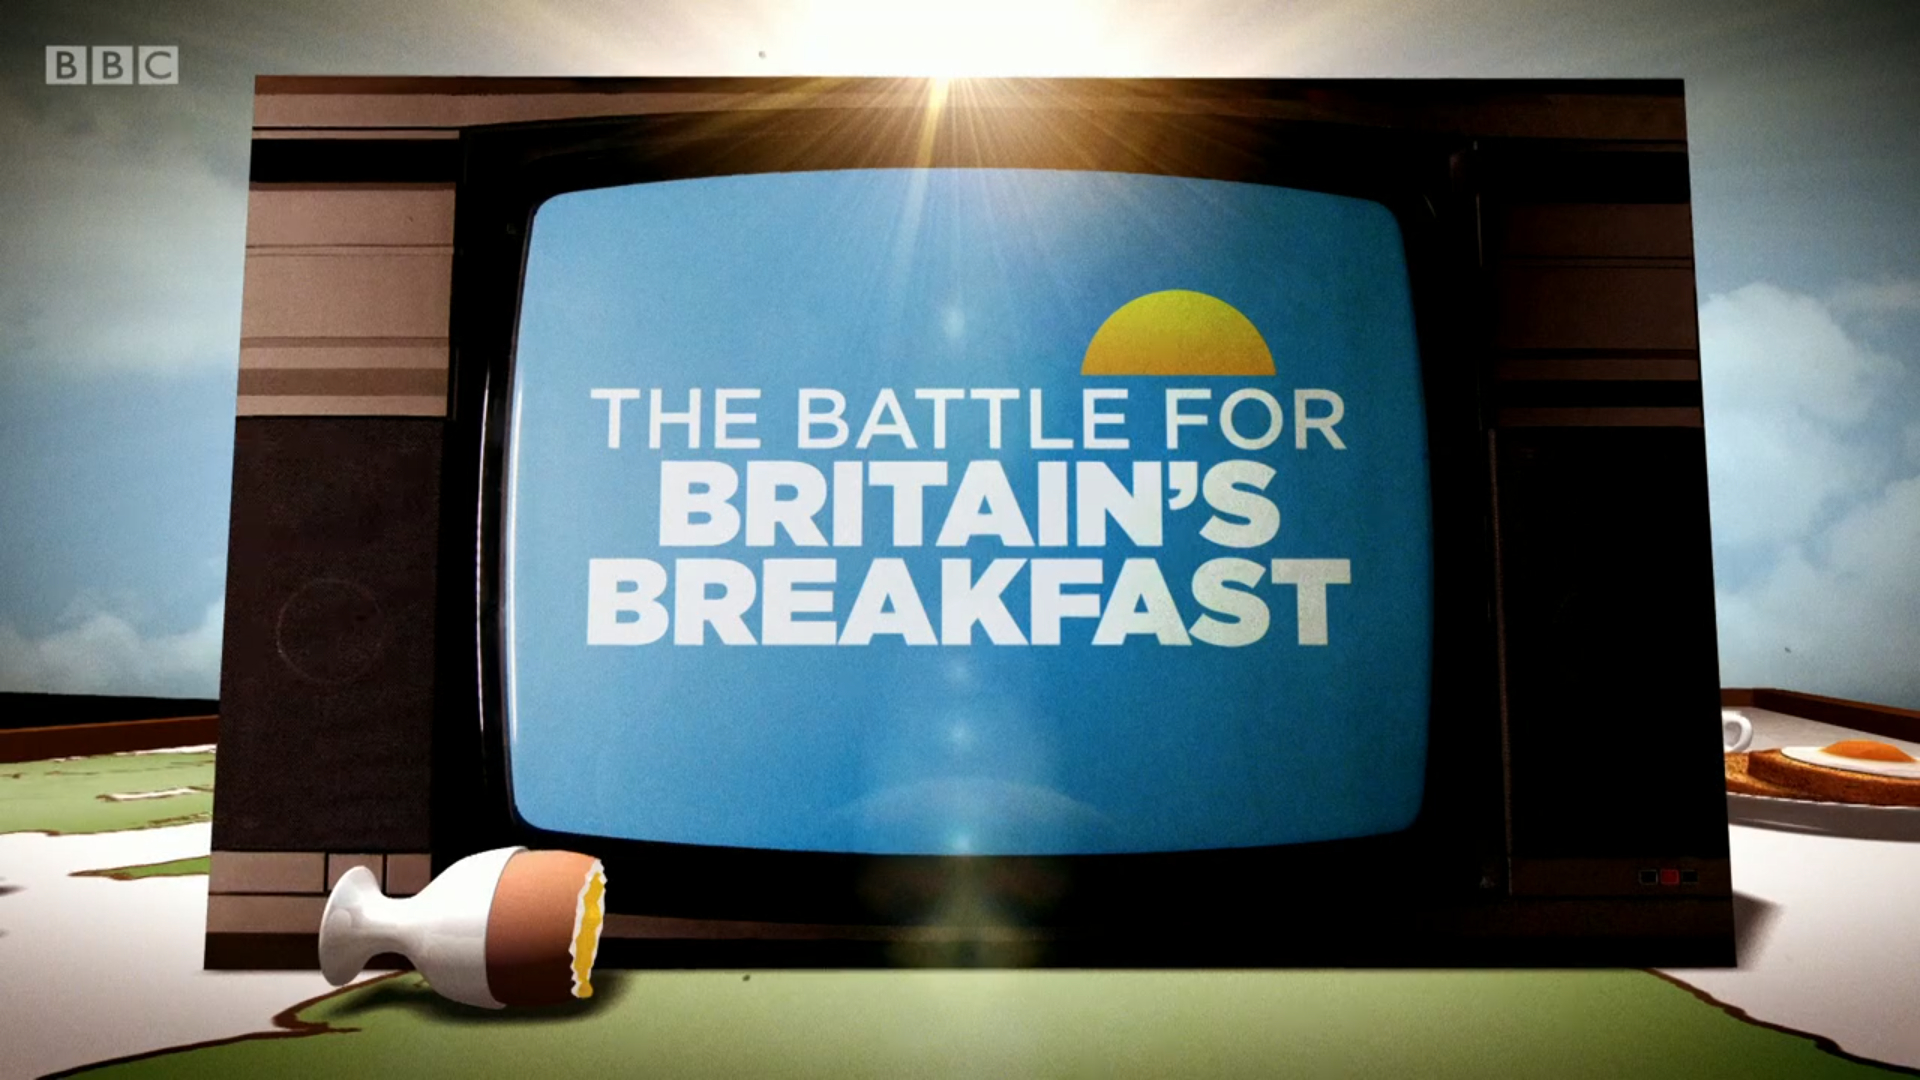 The Battle for Britain's Breakfast